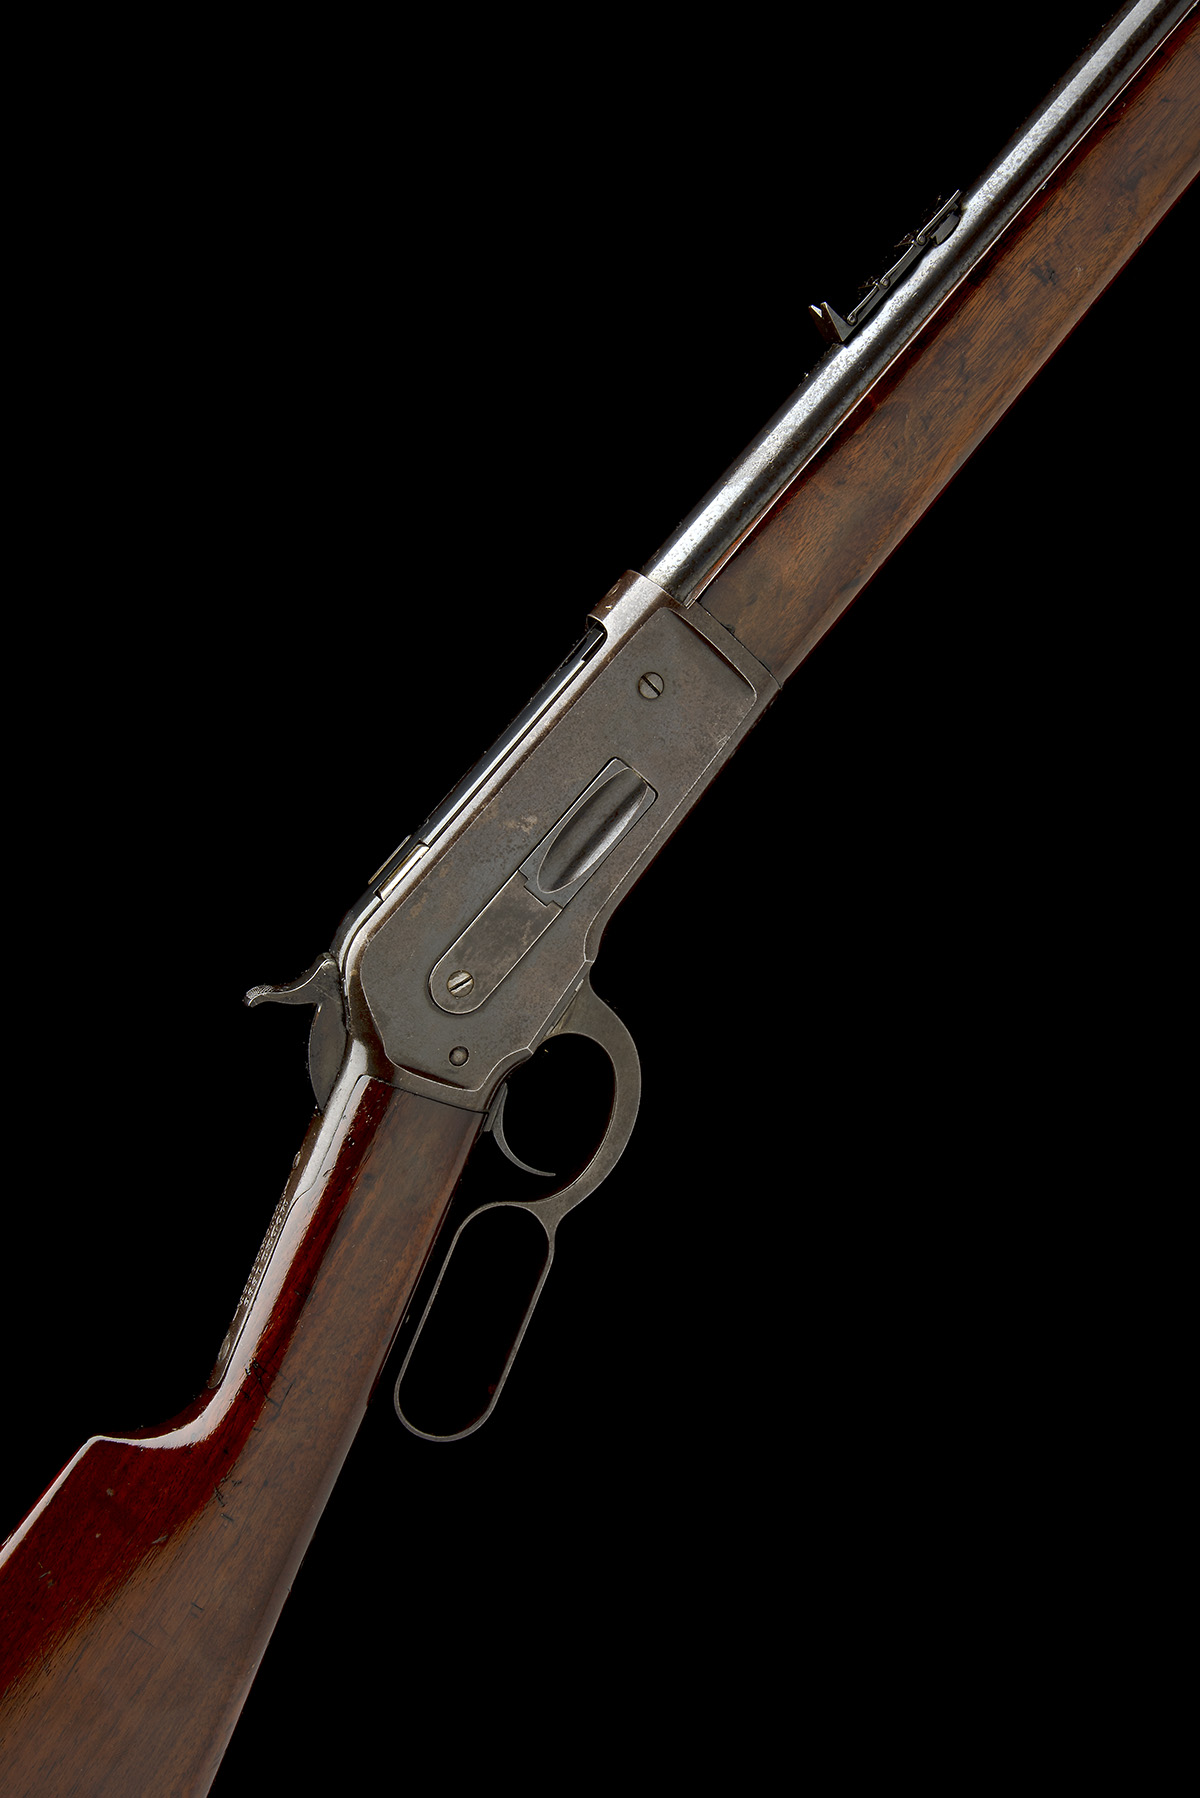 WINCHESTER REPEATING ARMS, USA A 50-110 (WCF) LEVER-ACTION SPORTING-RIFLE, MODEL 'ENGLISH MODEL